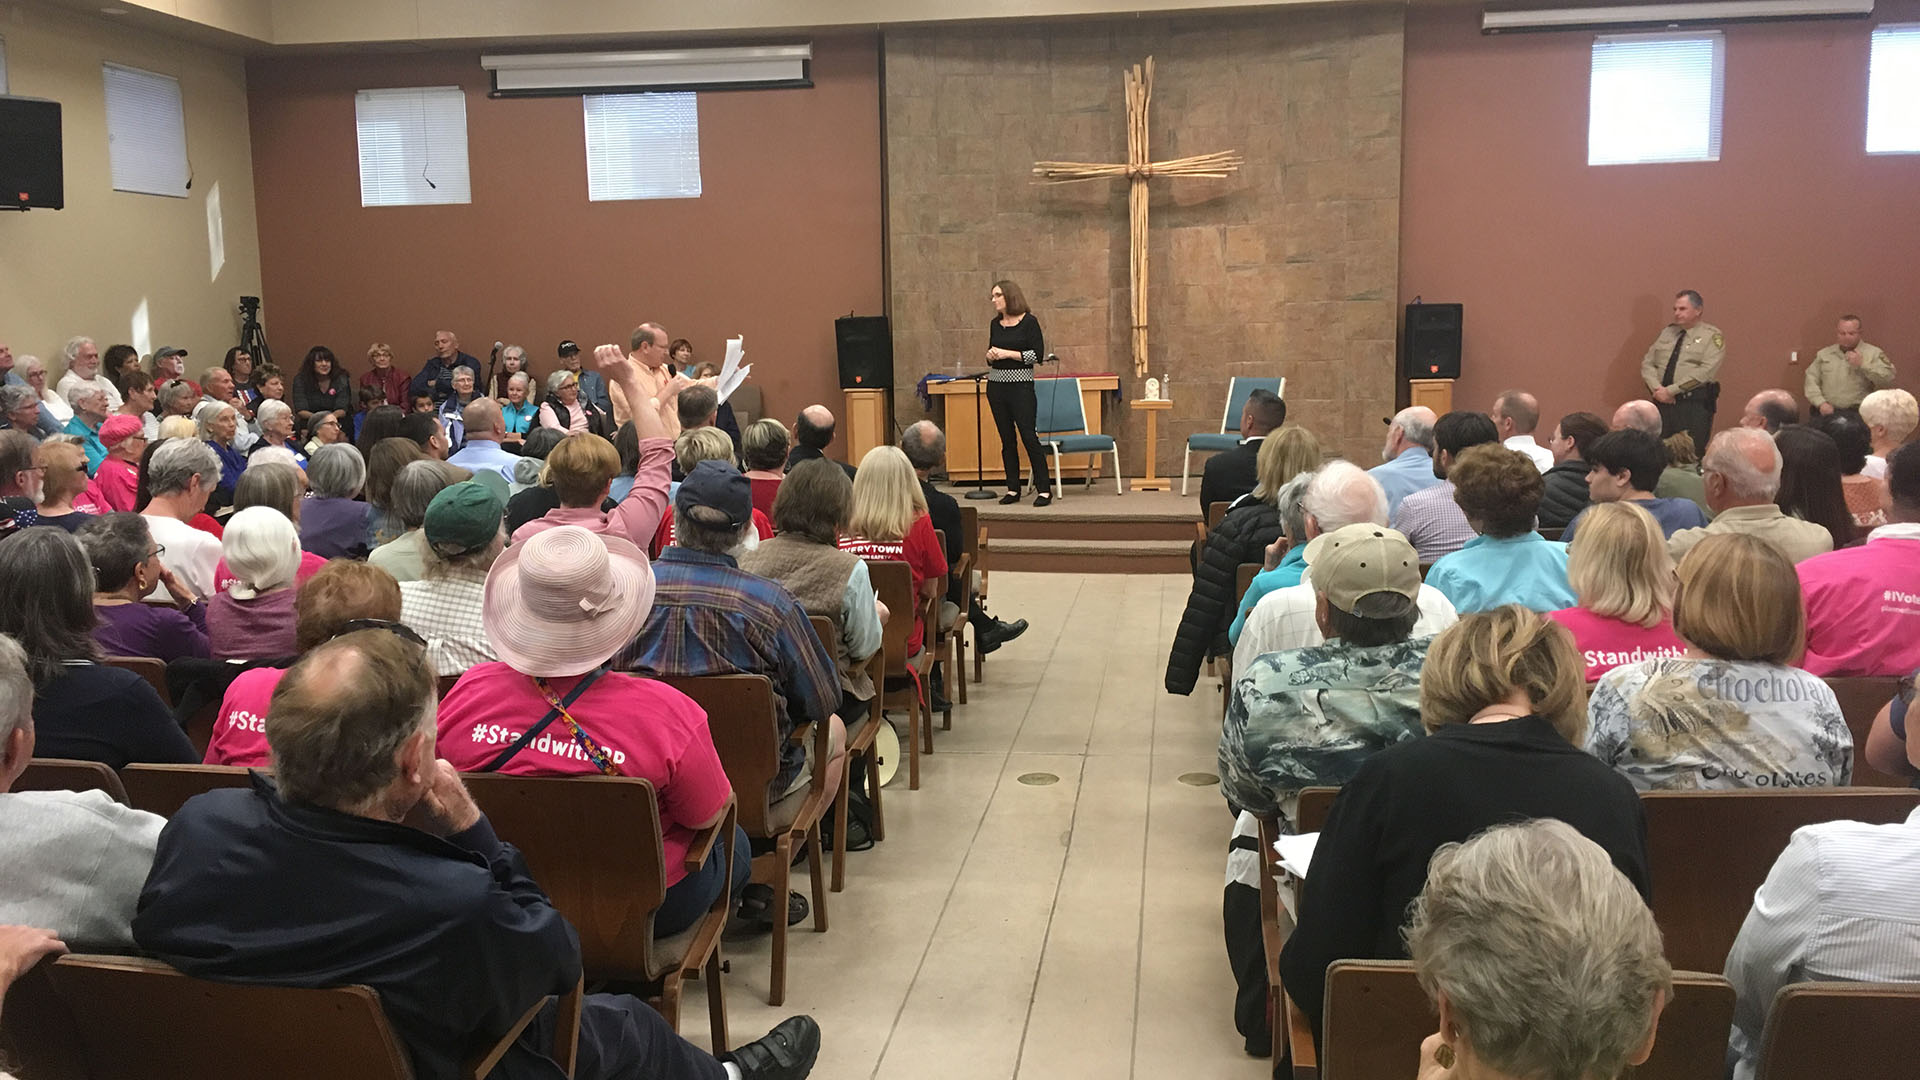 Around 250 people fill the room at a town hall with U.S. Rep. Martha McSally on Feb. 23, 2017.